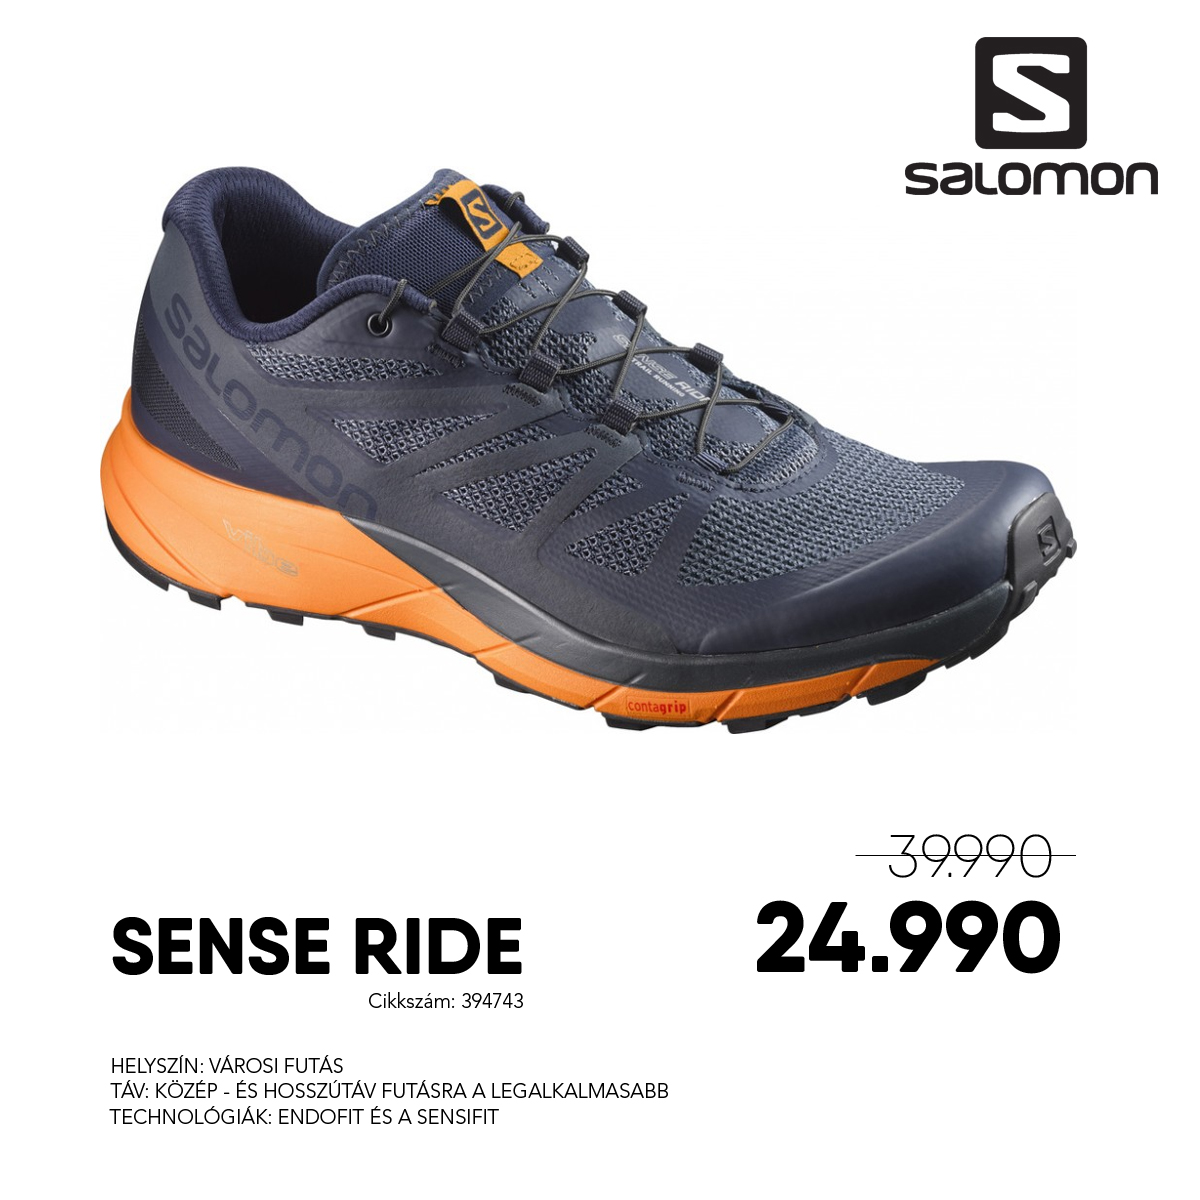 Salomon Futócipő SENSE RIDE - 394743-Navy_Blaze_Bright_Mar_O